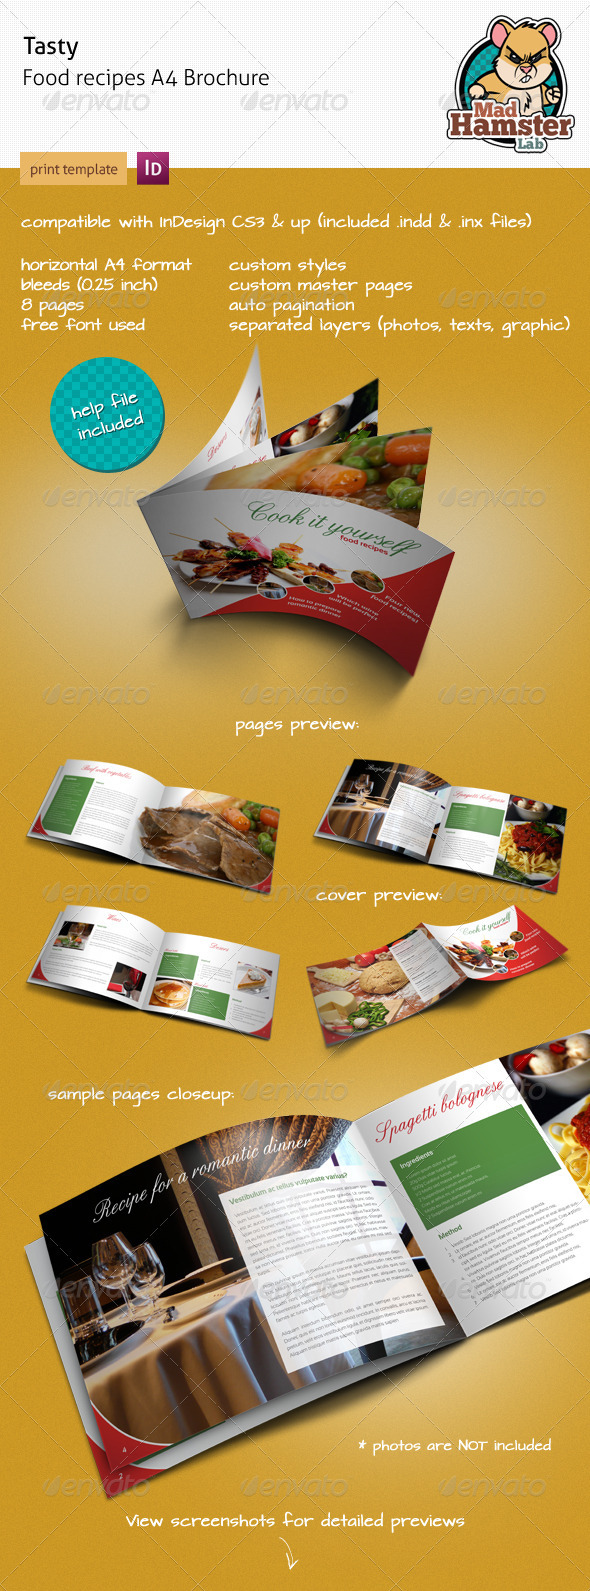 A5 horizontal brochure template indesign for Horizontal brochure design